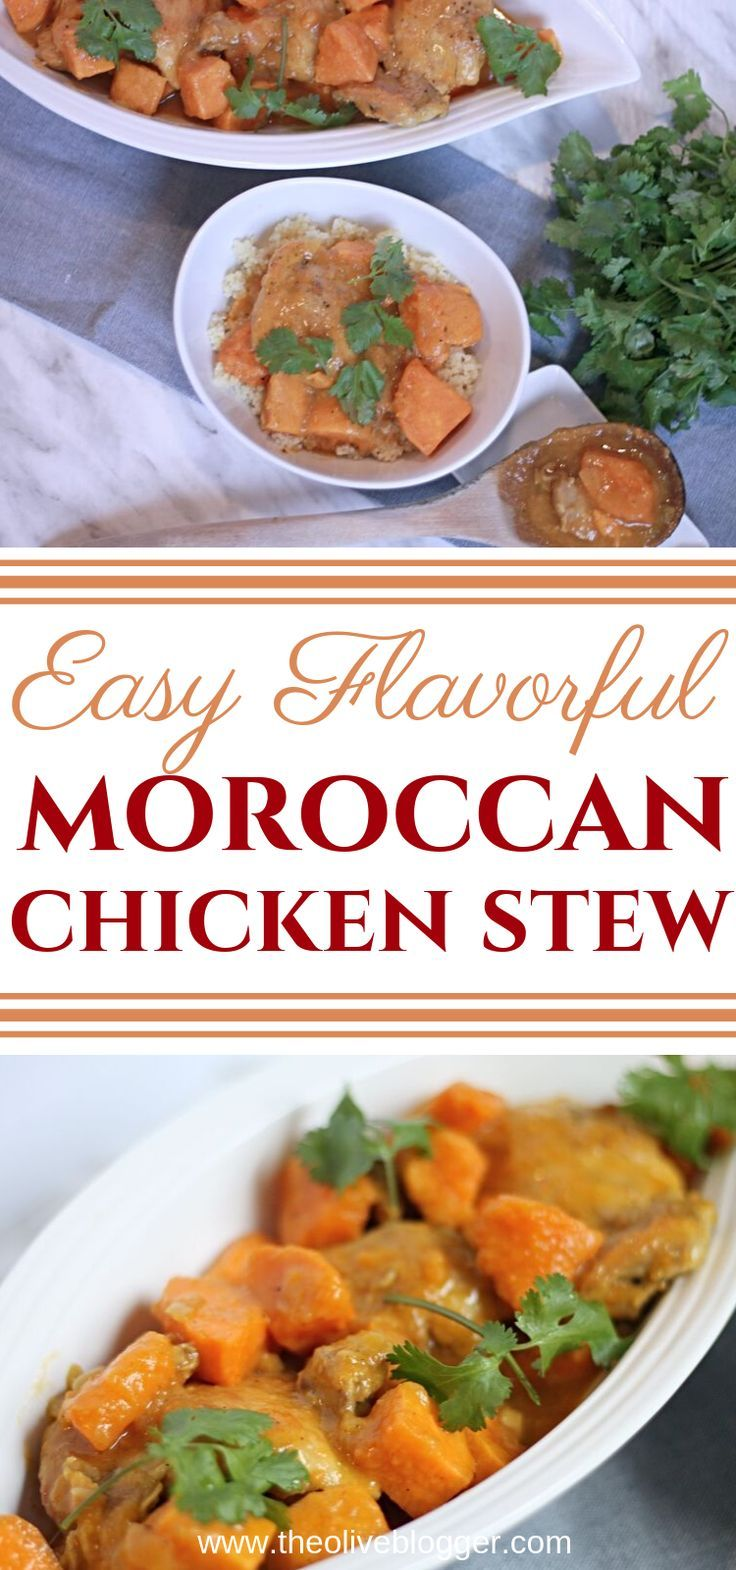 Easy Moroccan Chicken Stew with Sweet Potatoes and Couscous